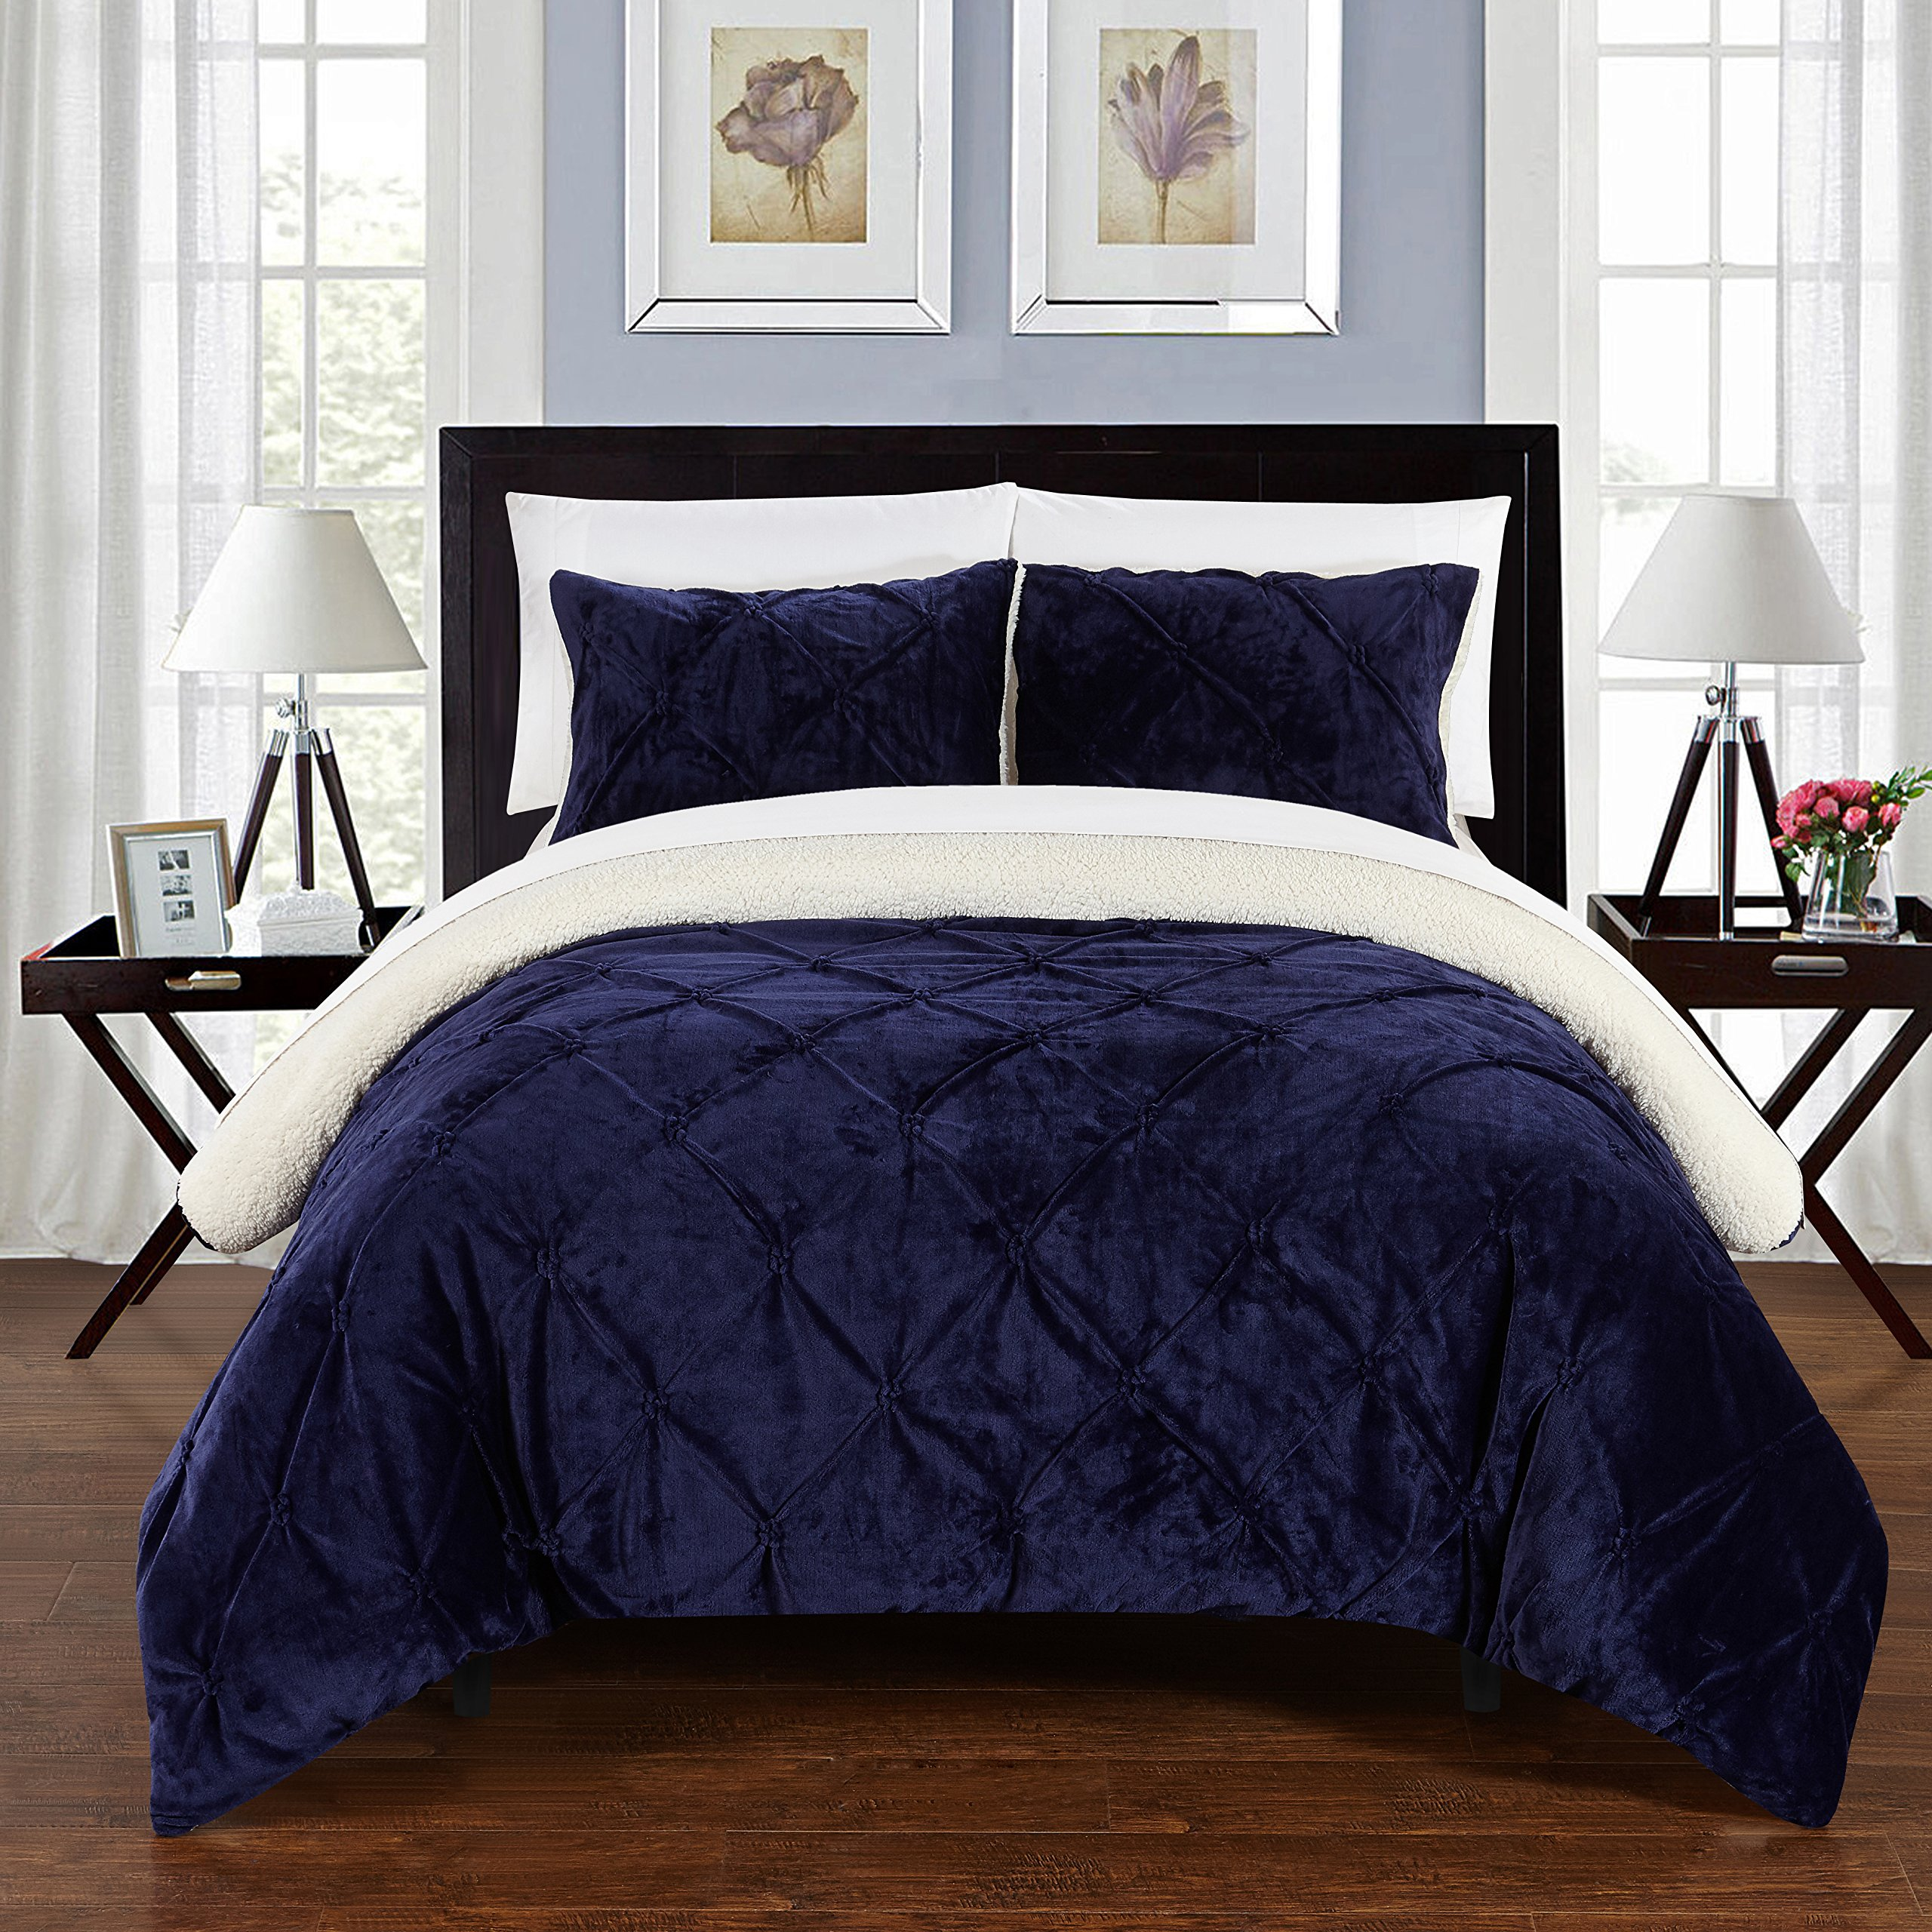 Chic Home CS5107-AN 2 Piece Josepha Pinch Pleated Ruffled And Pin Tuck Sherpa Lined Bed In A Bag Comforter Set, Twin X-Large, Navy